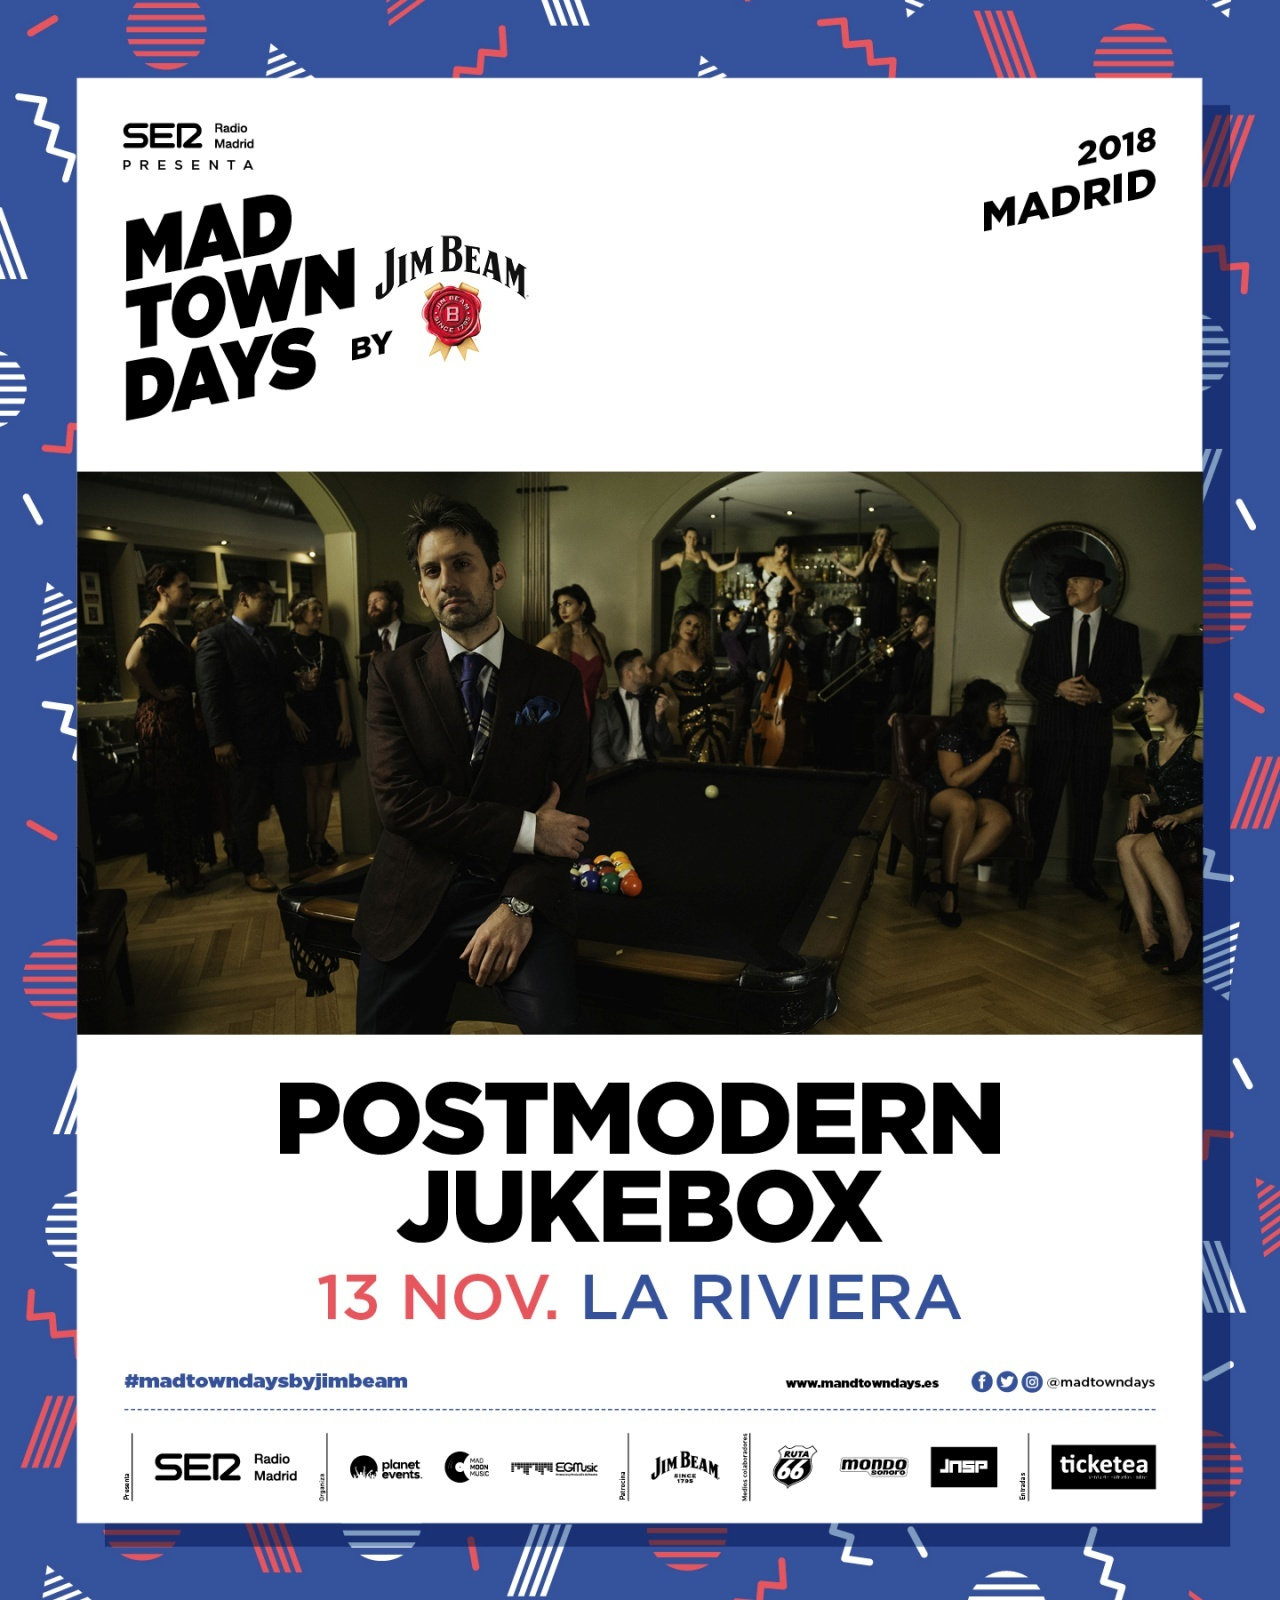 6 Postmodern Jukebox 13 Nov